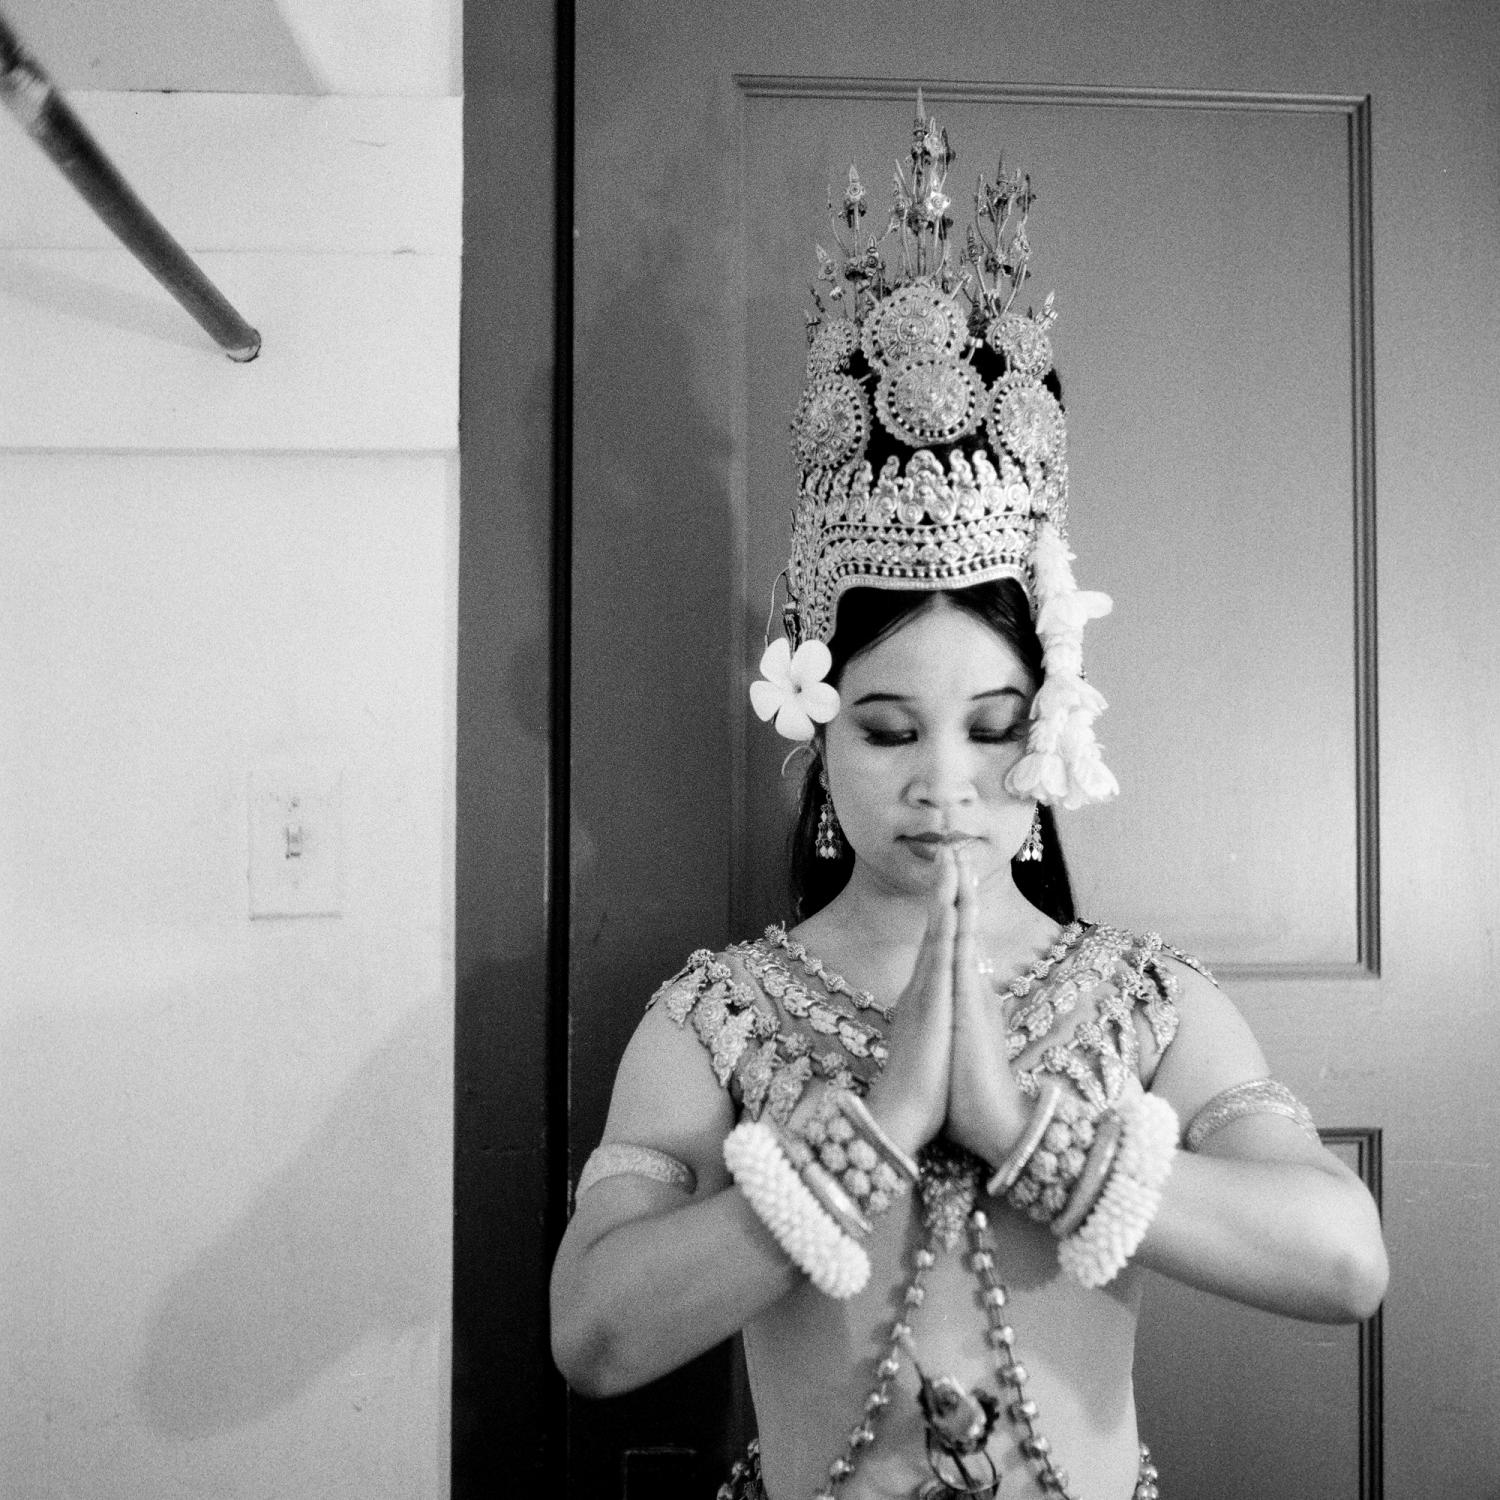 Celebrated dancer Charya Burt meditates in the dressing room, shortly before a performance at Koffman Auditorium in Alameda CA. As a member of Cambodia's Royal Dance Troupe, Charya toured nationally and internationally. After emigrating in 1993, Charya has been performing throughout the United States, including the Getty Museum in Los Angeles, the Kennedy Center in Washington DC, the San Francisco Opera House and countless times as a featured dancer at the San Francisco Ethnic Dance Festival. Her original works have been presented by the Jacob's Pillow Dance Festival, World Arts West, CounterPULSE, UC Santa Barbara, San Francisco Asian Art Museum, Oregon Shakespeare Festival, and many others. Charya holds a B.A., Cum Laude, from Sonoma State University and has conducted dance workshops at schools and colleges around the country. Charya is also a recipient of the Isadora Duncan Award for Individual Performance.